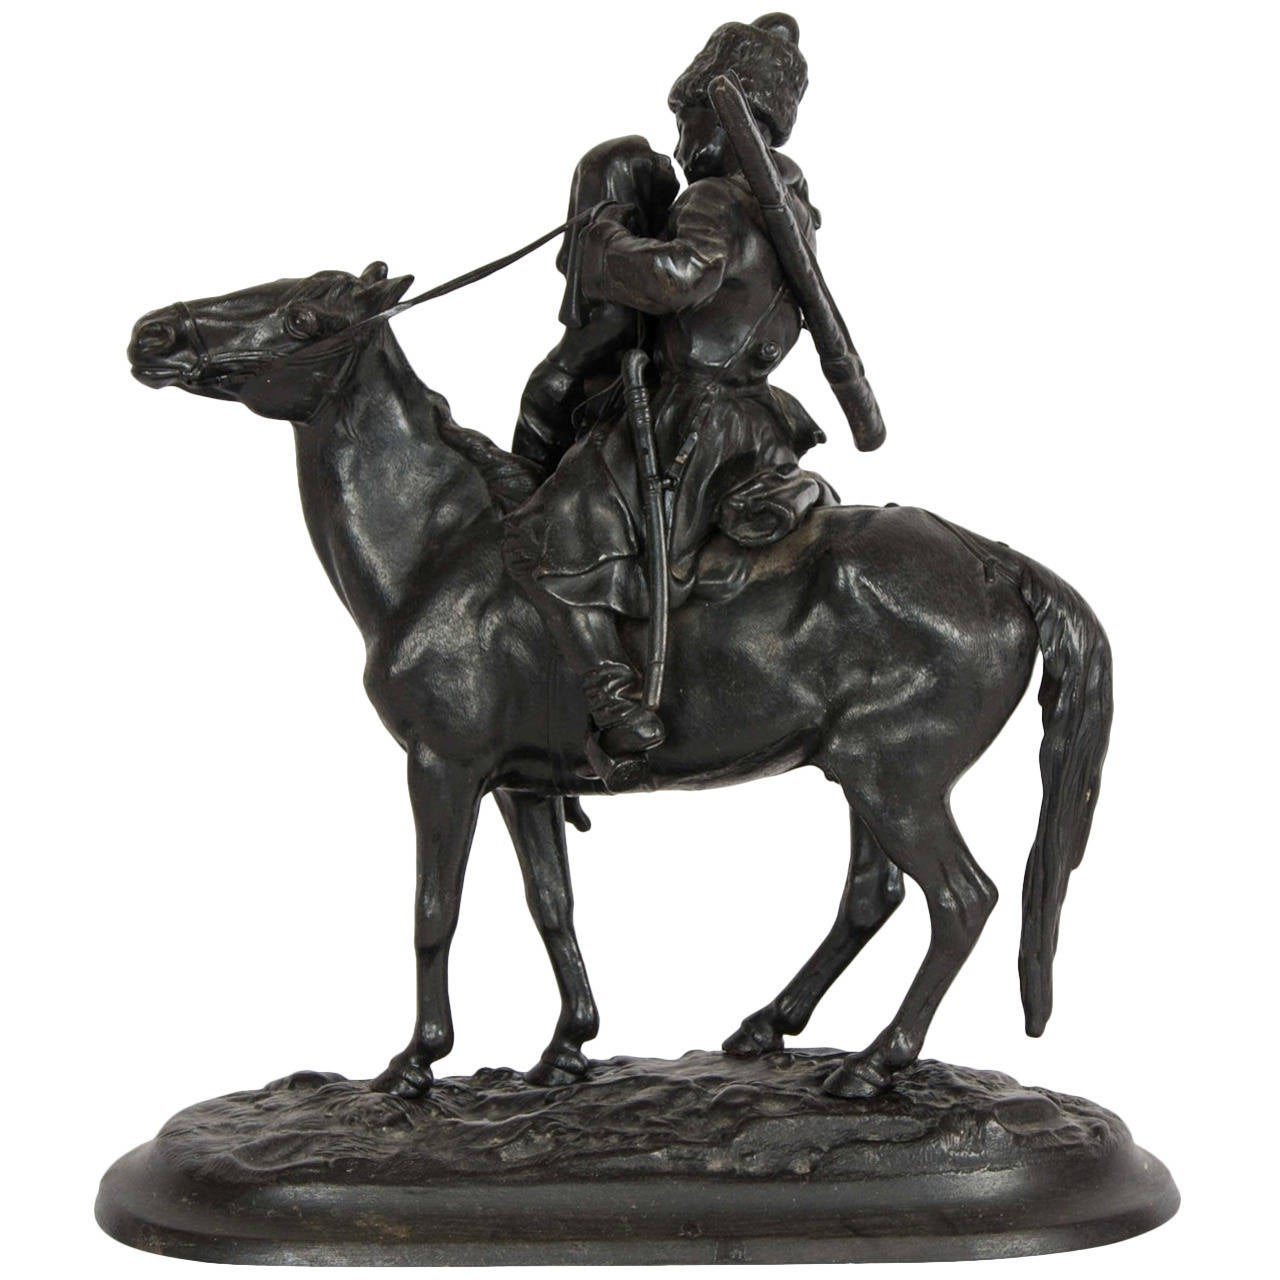 Russian Cast Iron Figure of a Cossack on Horseback For Sale